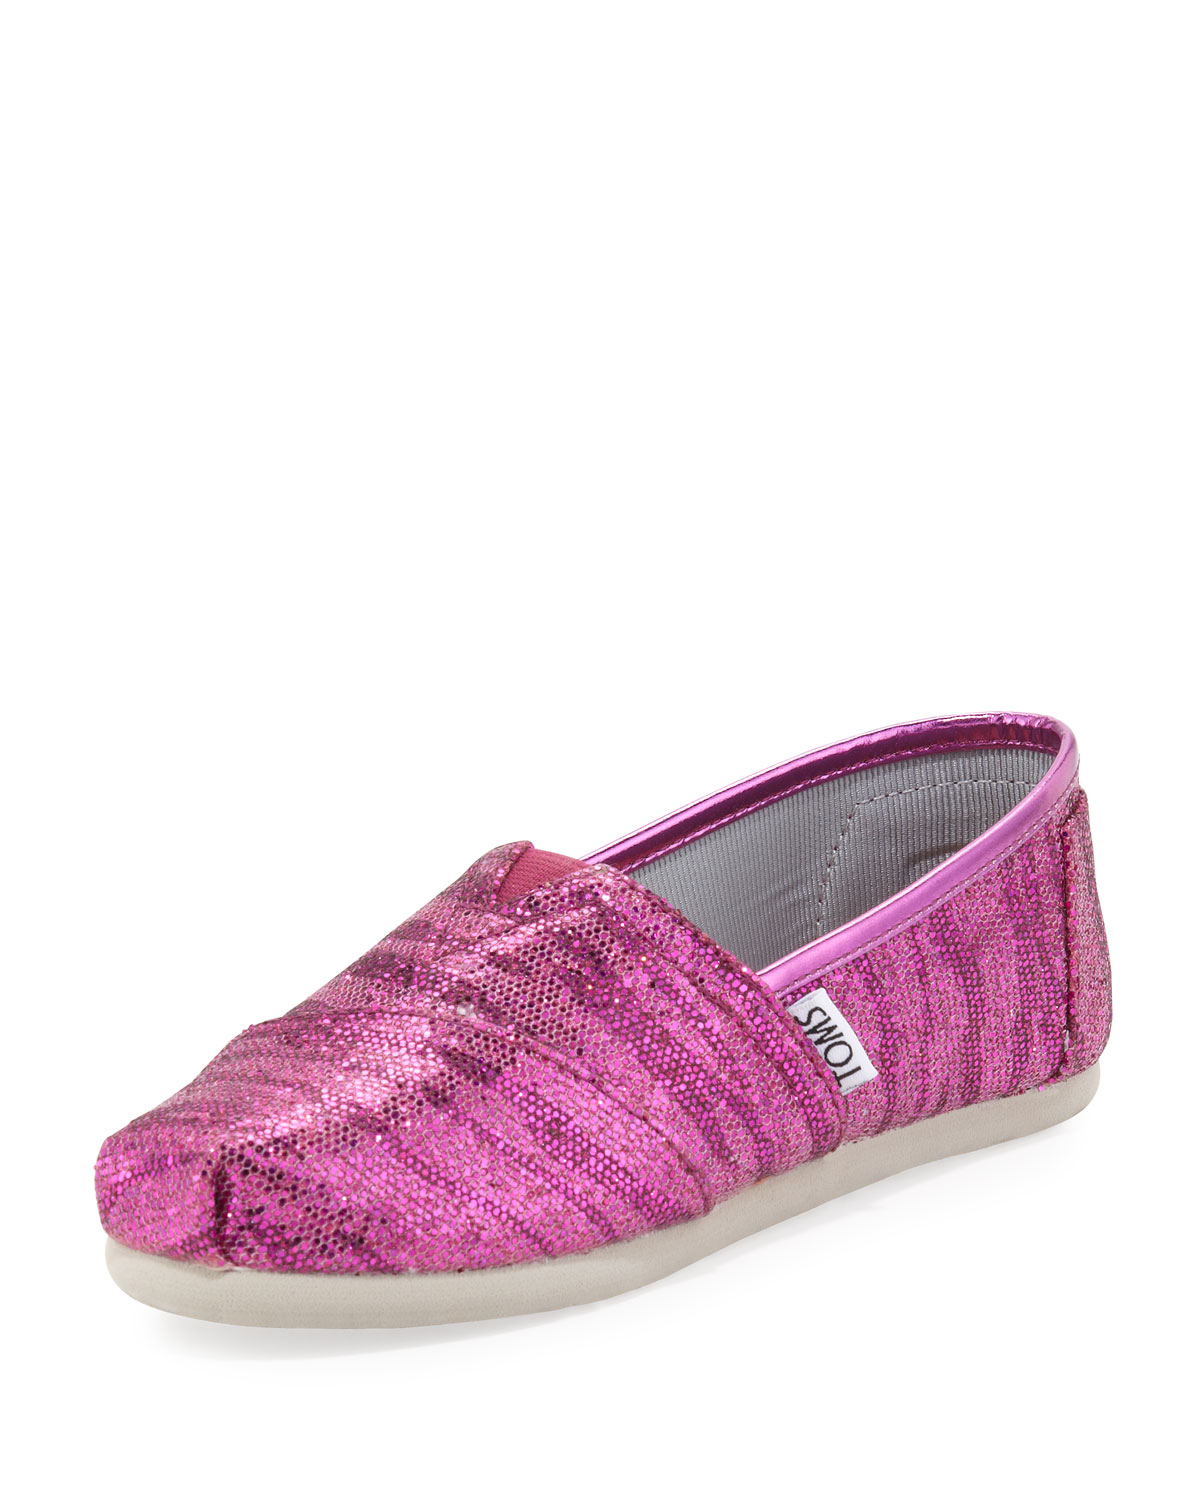 toms youth zebraglitter slipon shoes pink in pink lyst